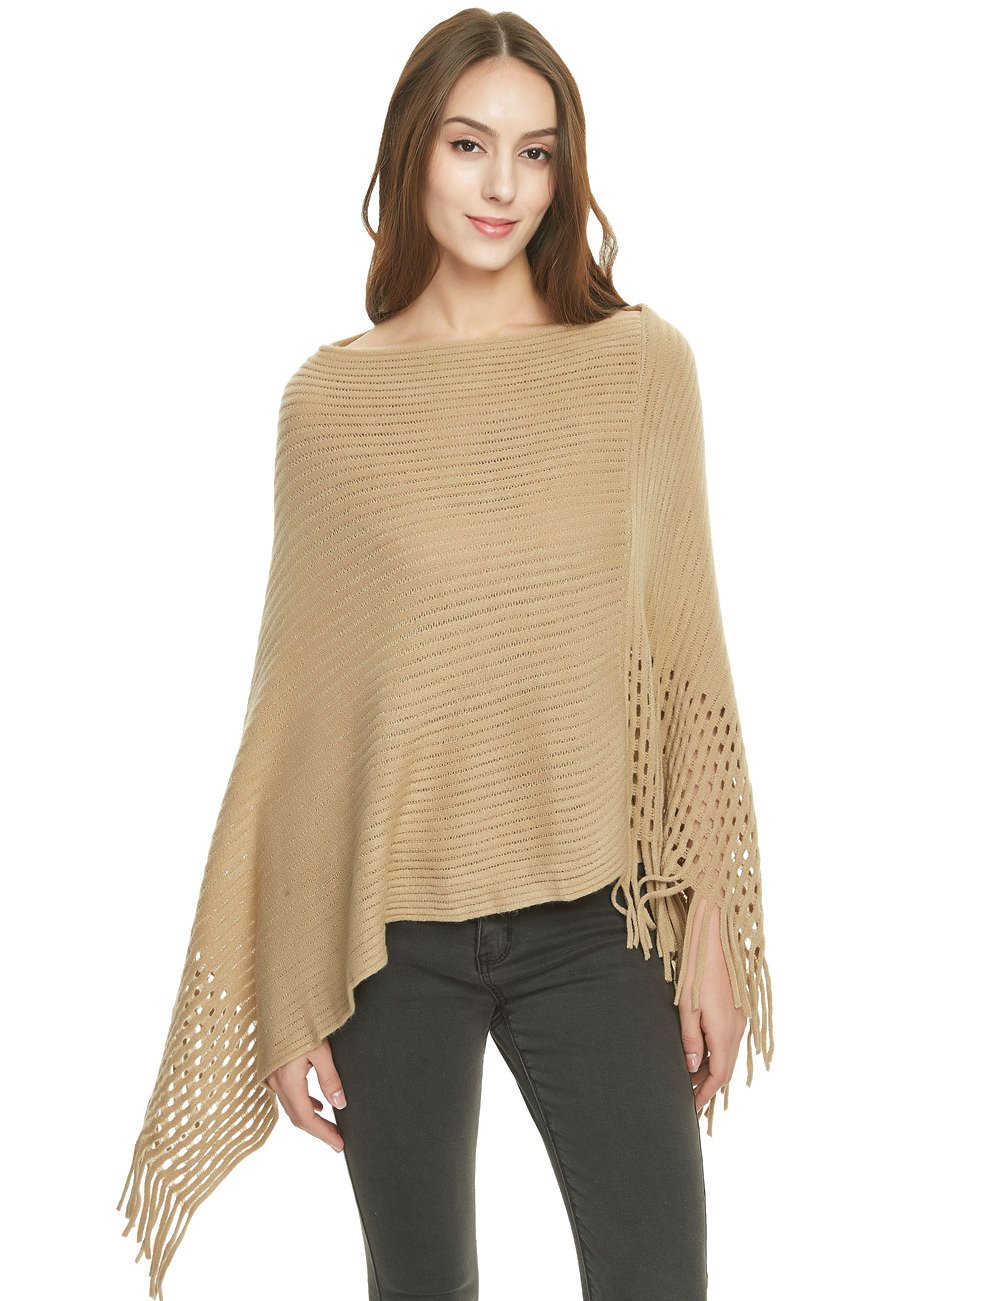 Ferand Women's Crochet Knit Poncho Sweater Soft Cape Shawl with Fringes, Khaki